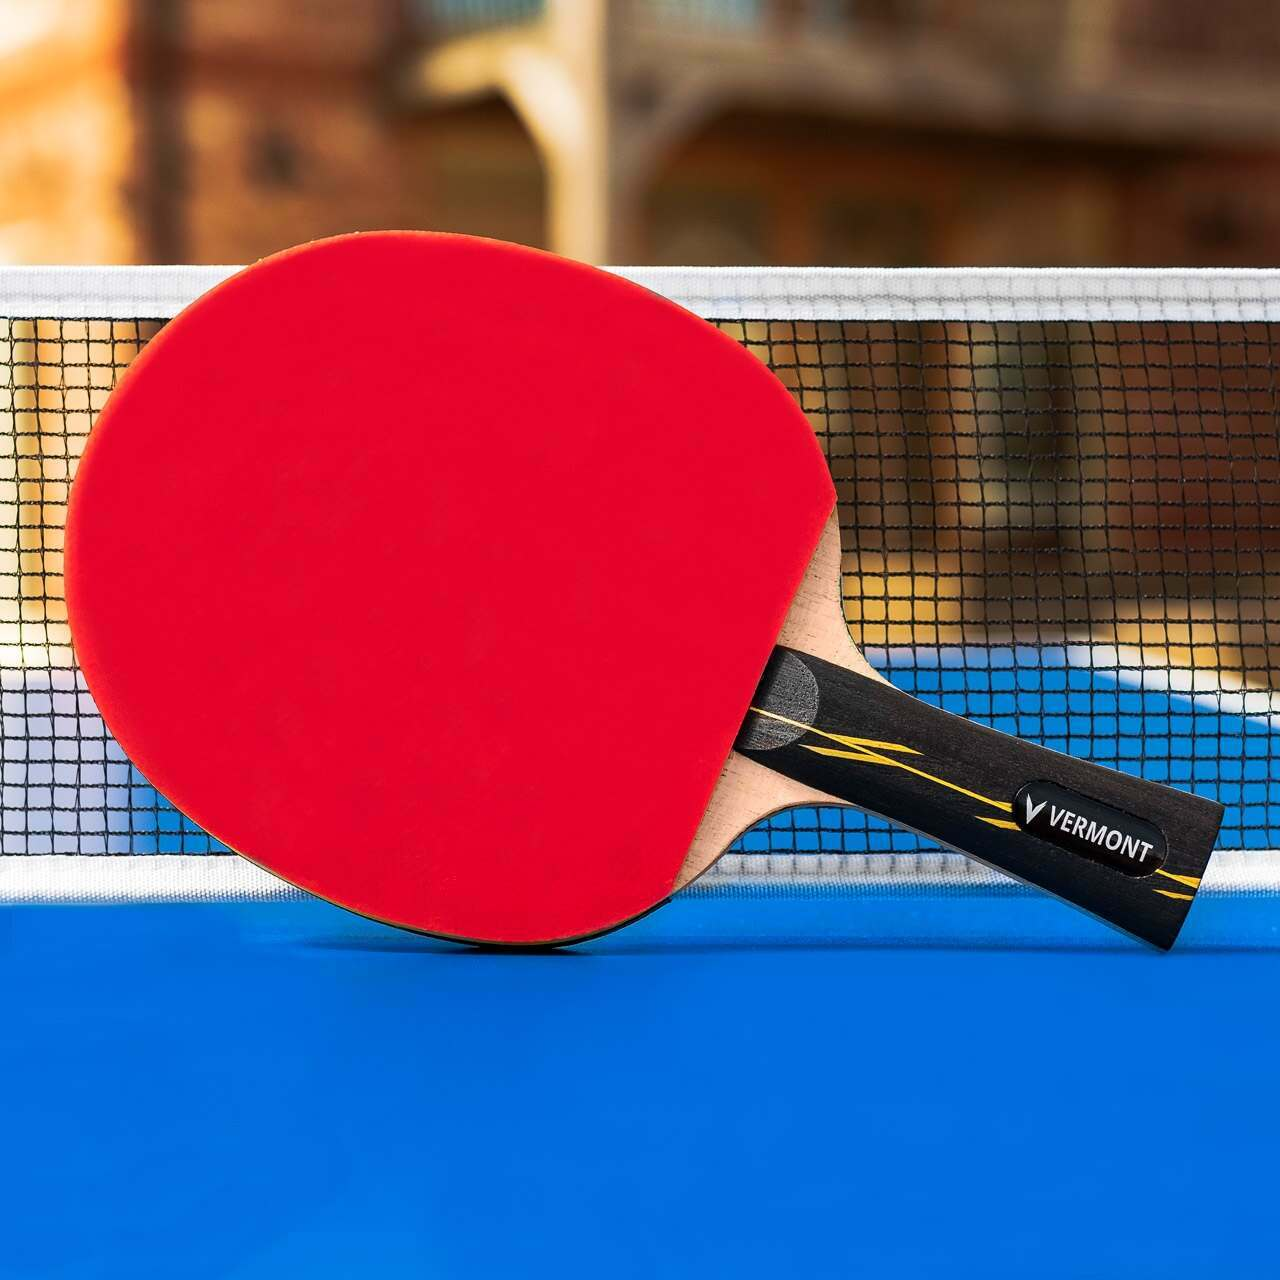 Vermont Prime Ping Pong Paddle [Pro]